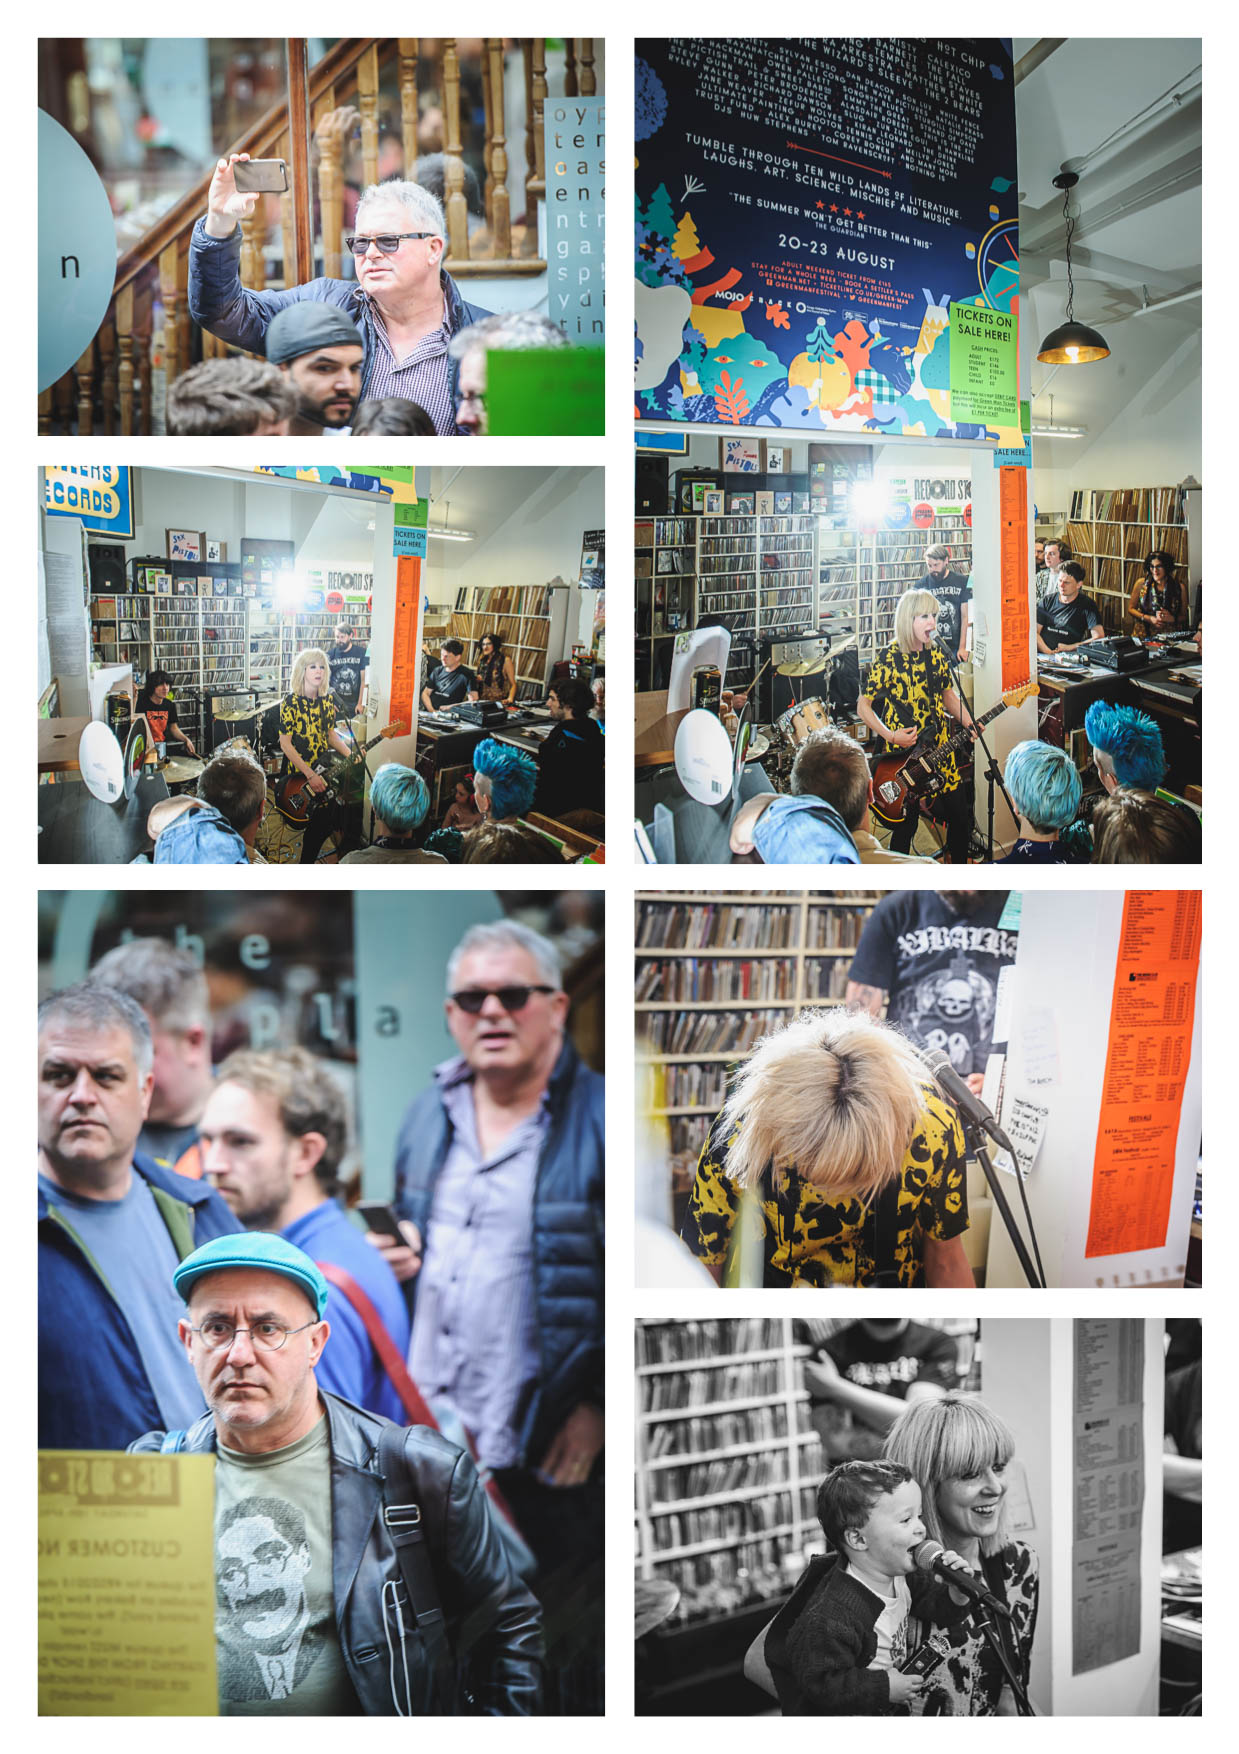 Fans watching The Lovely Eggs in Spillers Records on RSD 2015